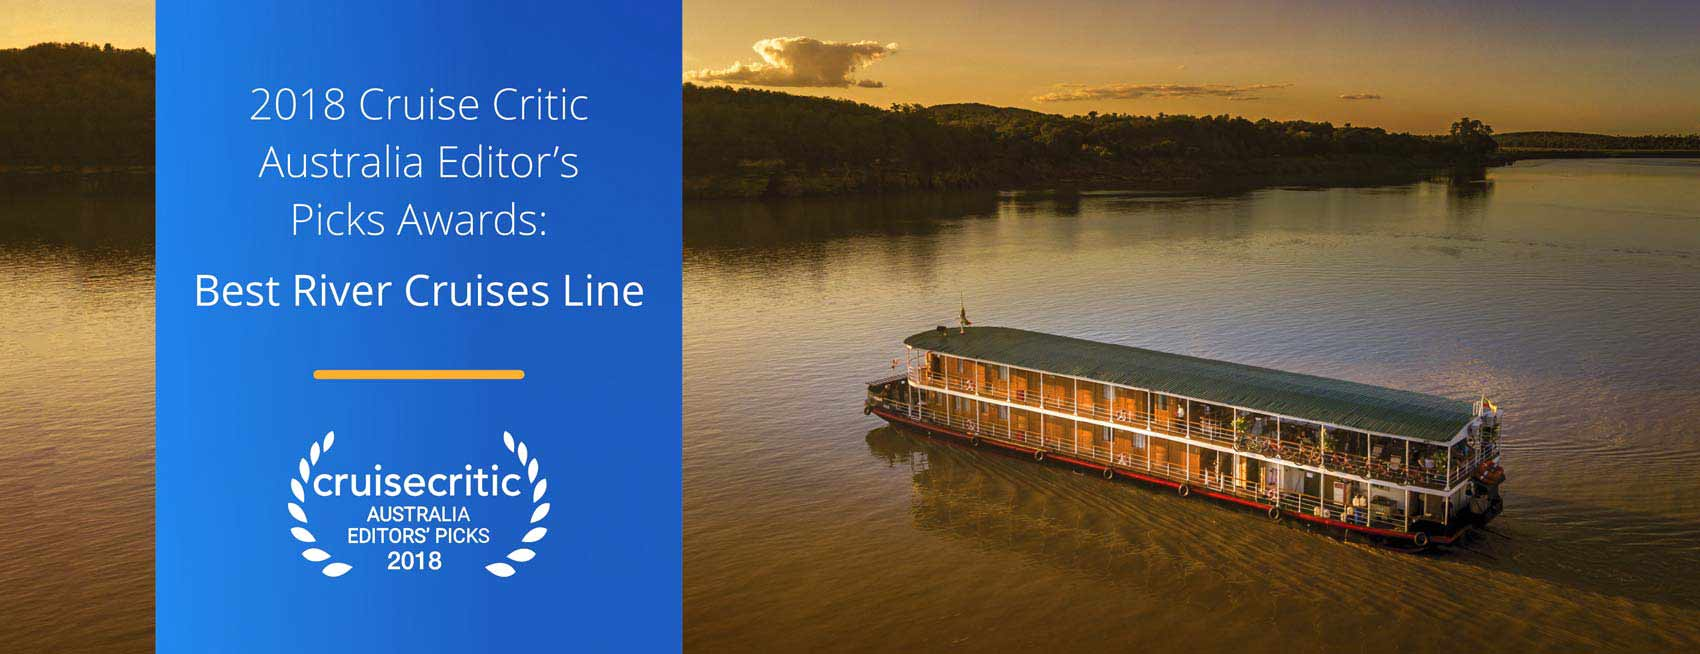 CruiseCritic Best River Cruise Line Award 2018